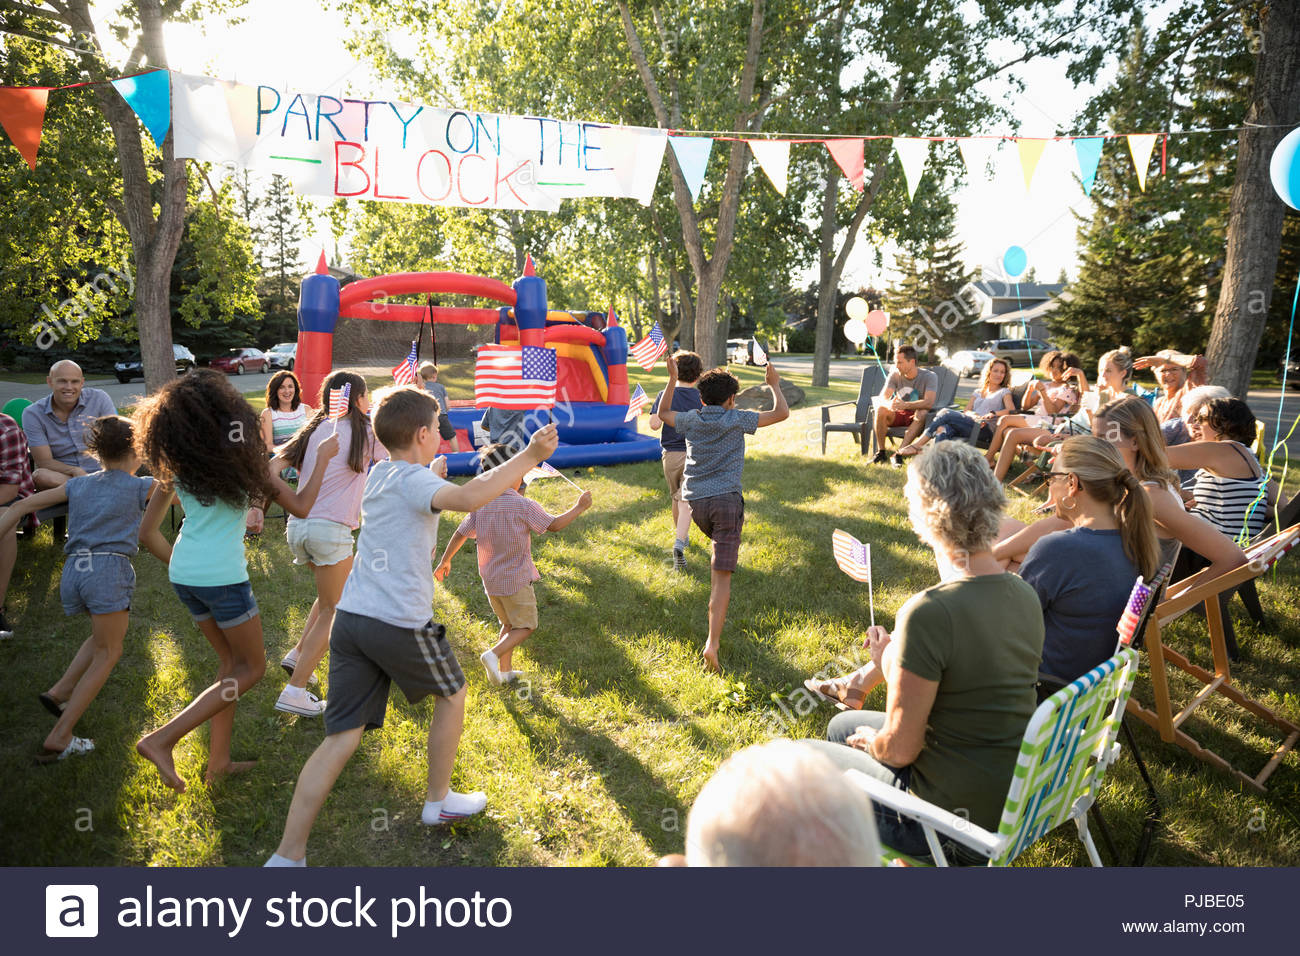 Neighbors watching kids waving American flags at 4th of July summer neighborhood block party in sunny park - Stock Image